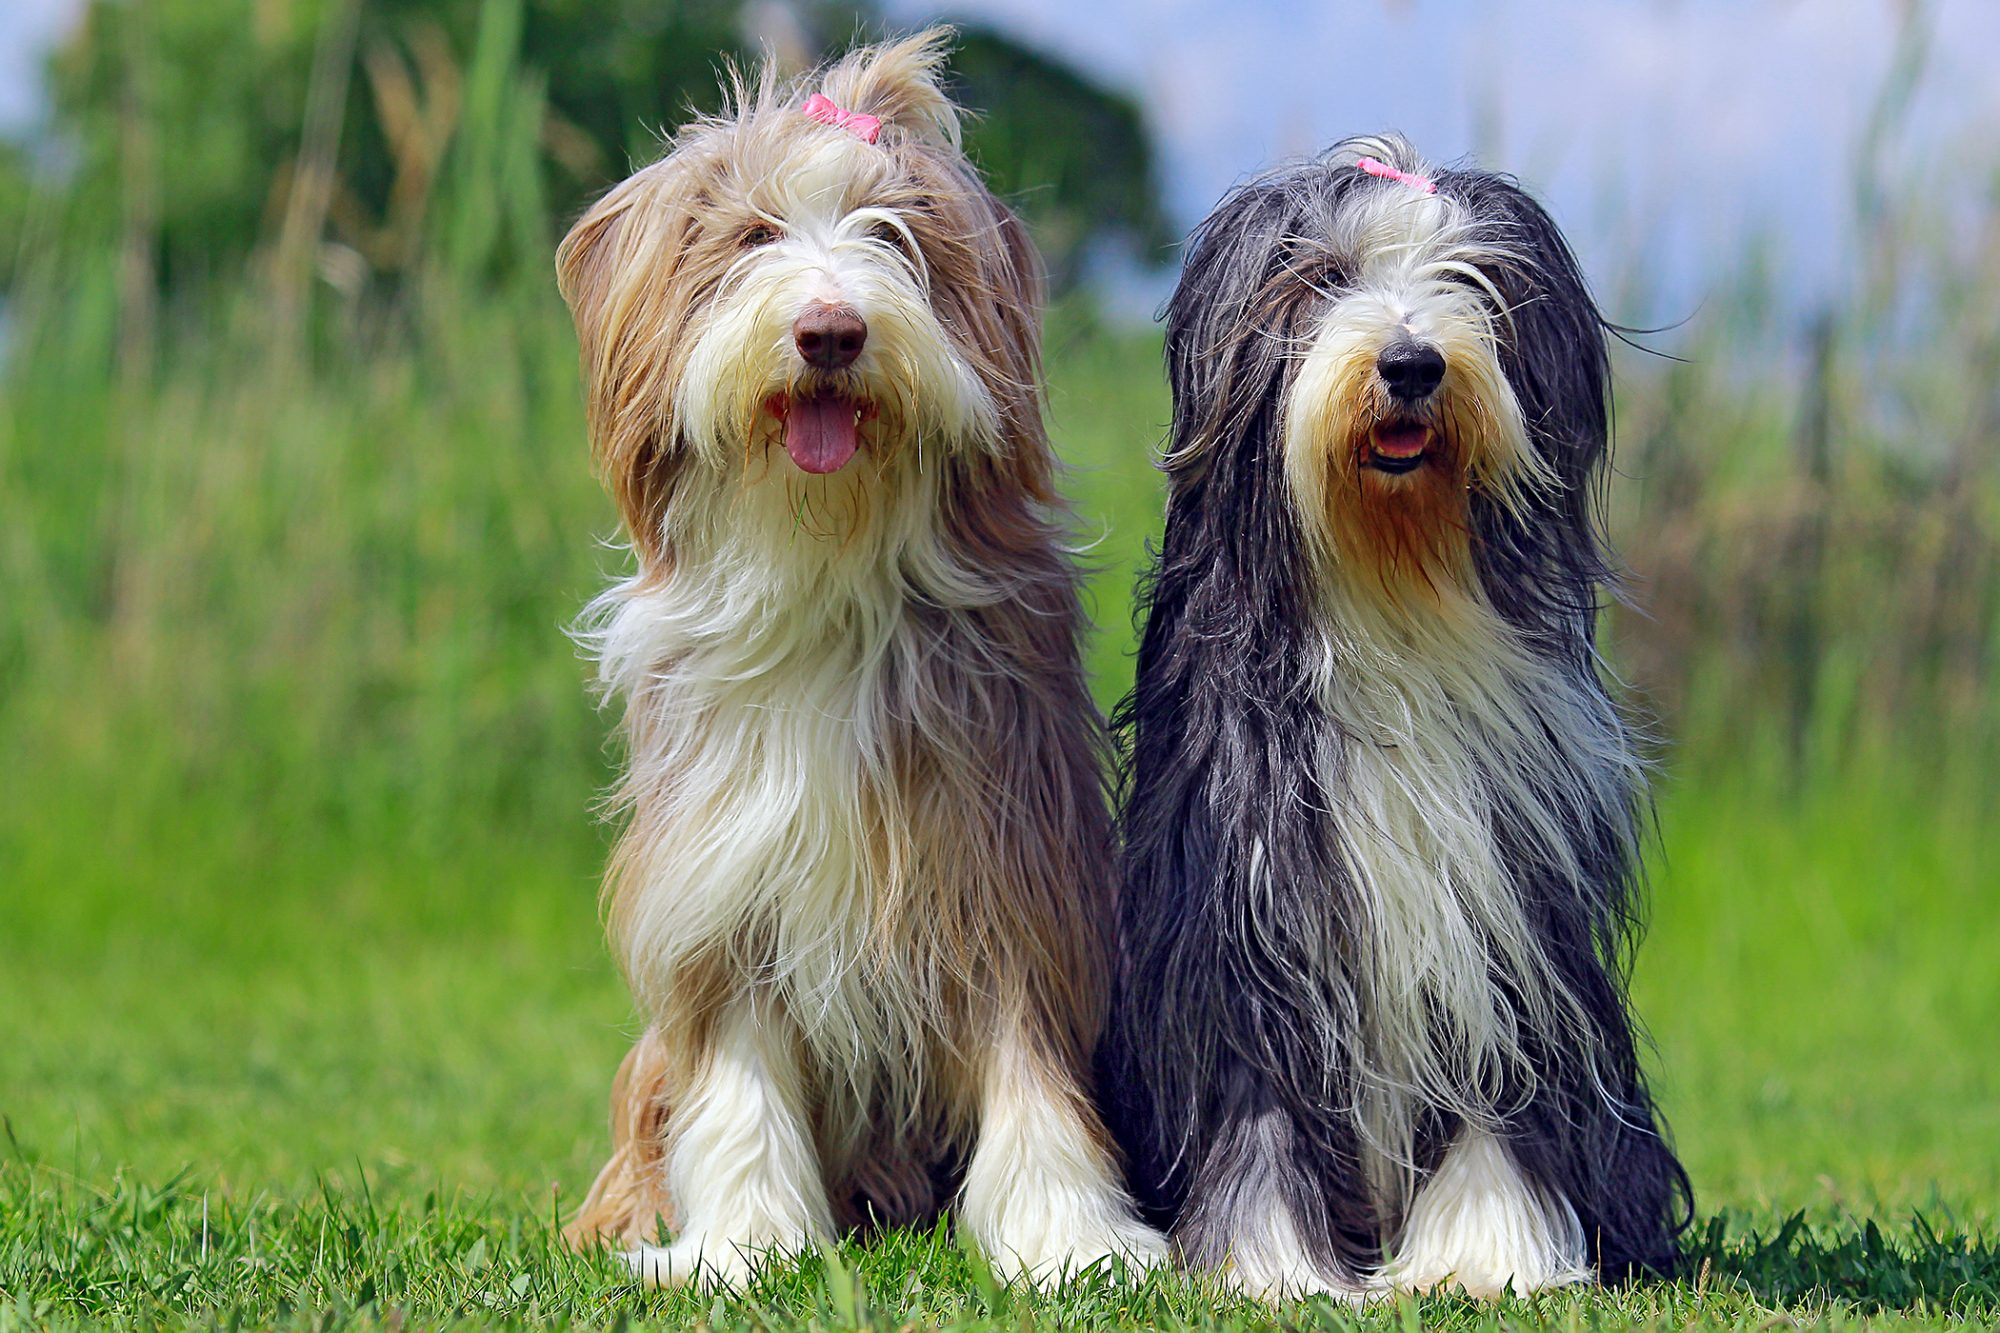 two bearded collies wearing pink bows sitting together outside in the grass